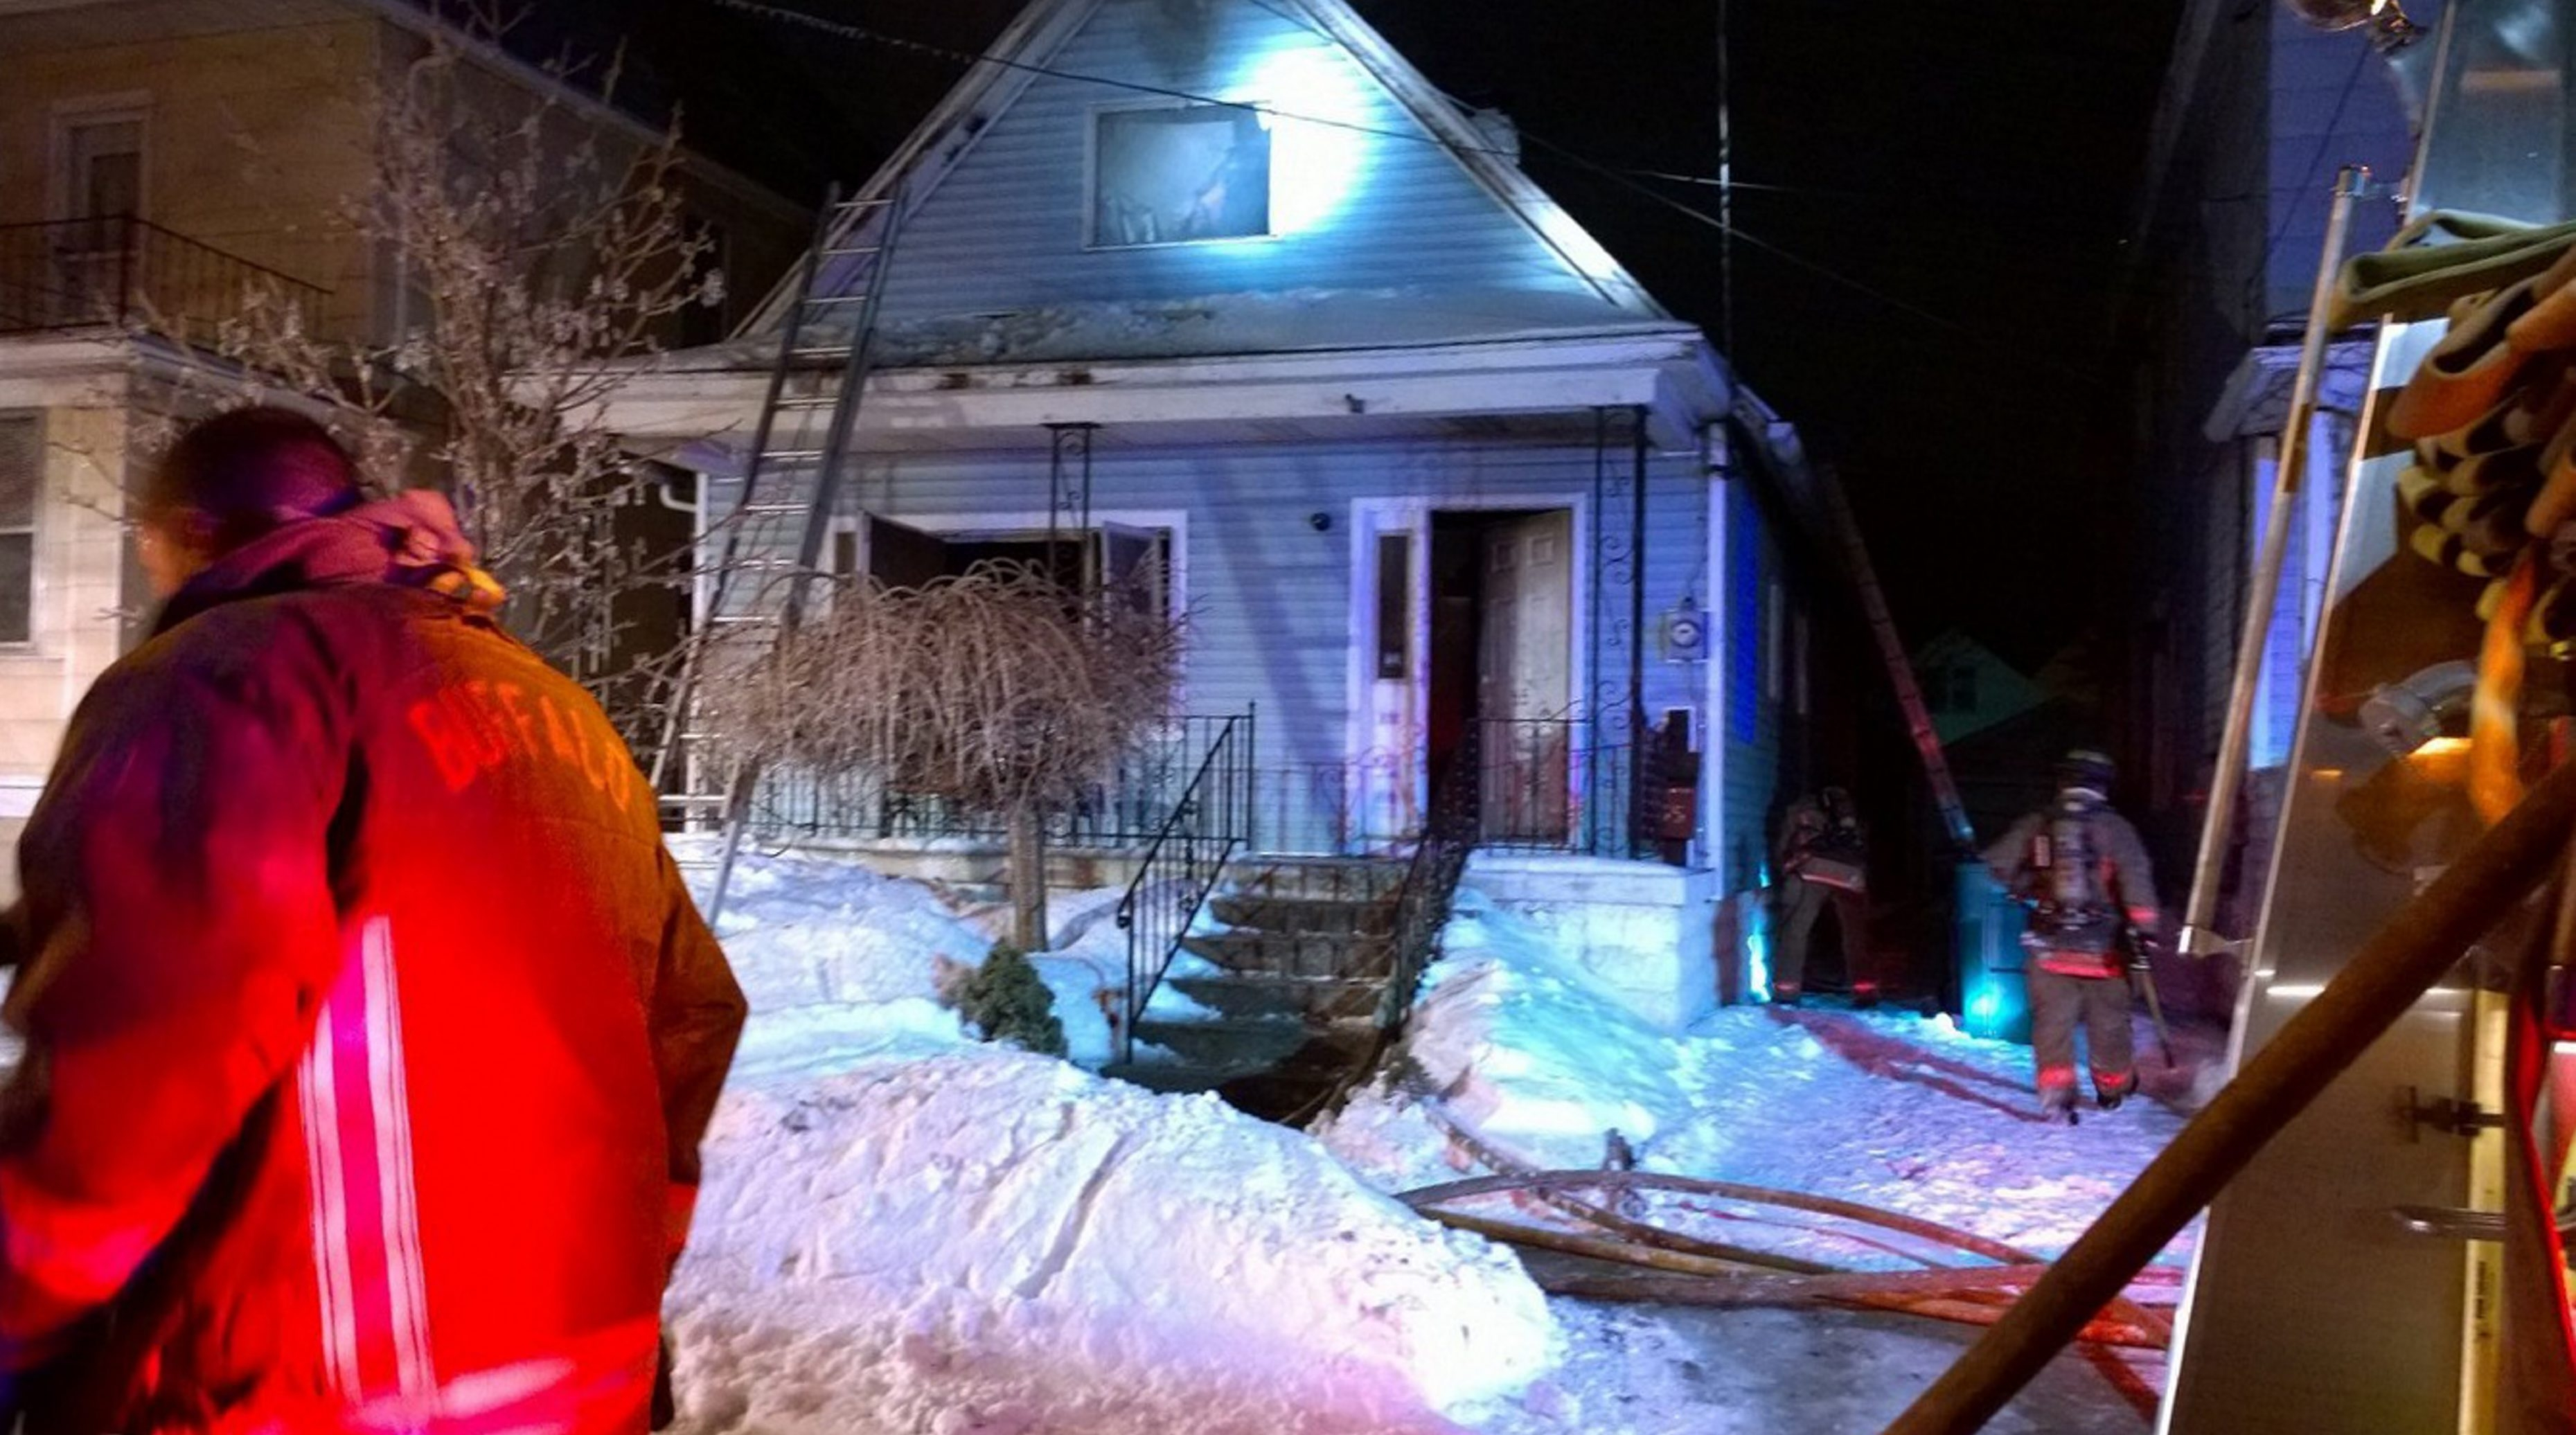 This file photo by David Kazmierczak shows the house fire earlier this week at 65 Sirret Street, where a man died.